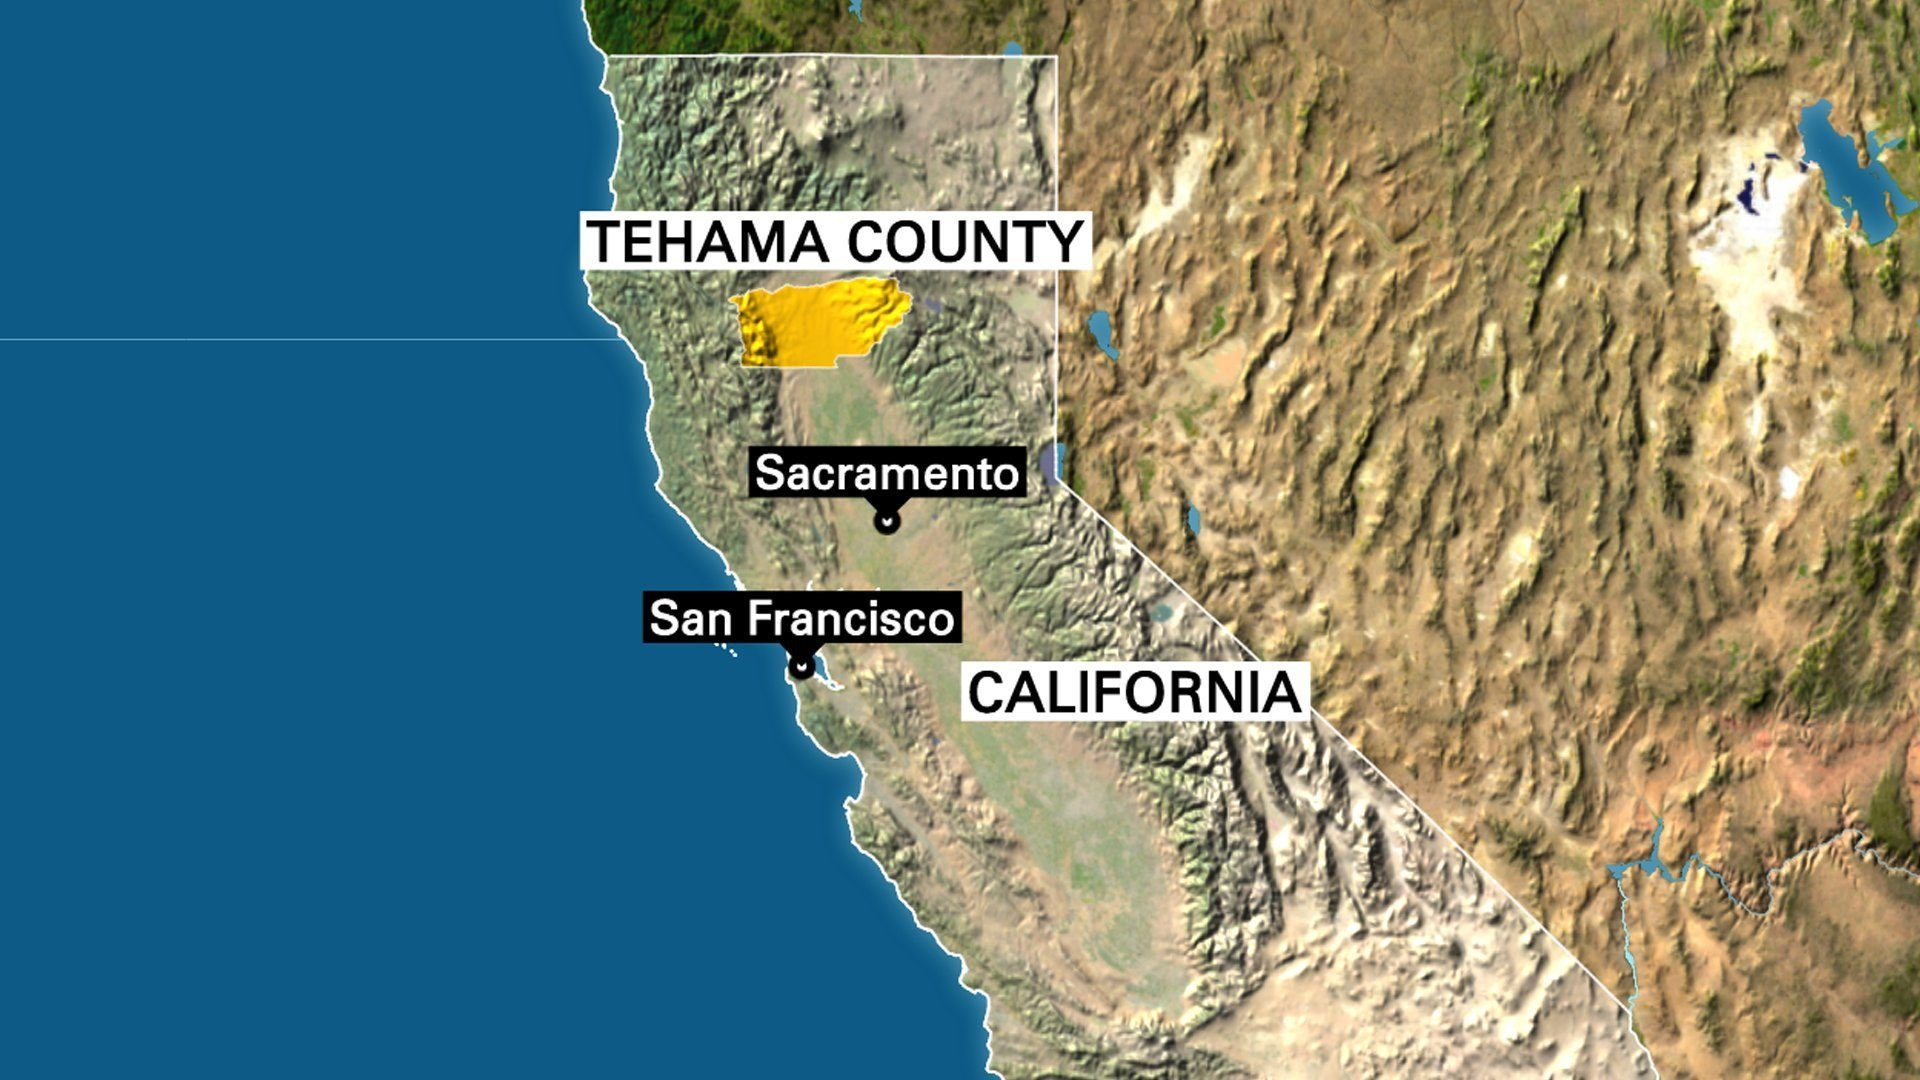 At least three people were killed Tuesday in northern California's Tehama County, Assistant Sheriff Phil Johnston said.